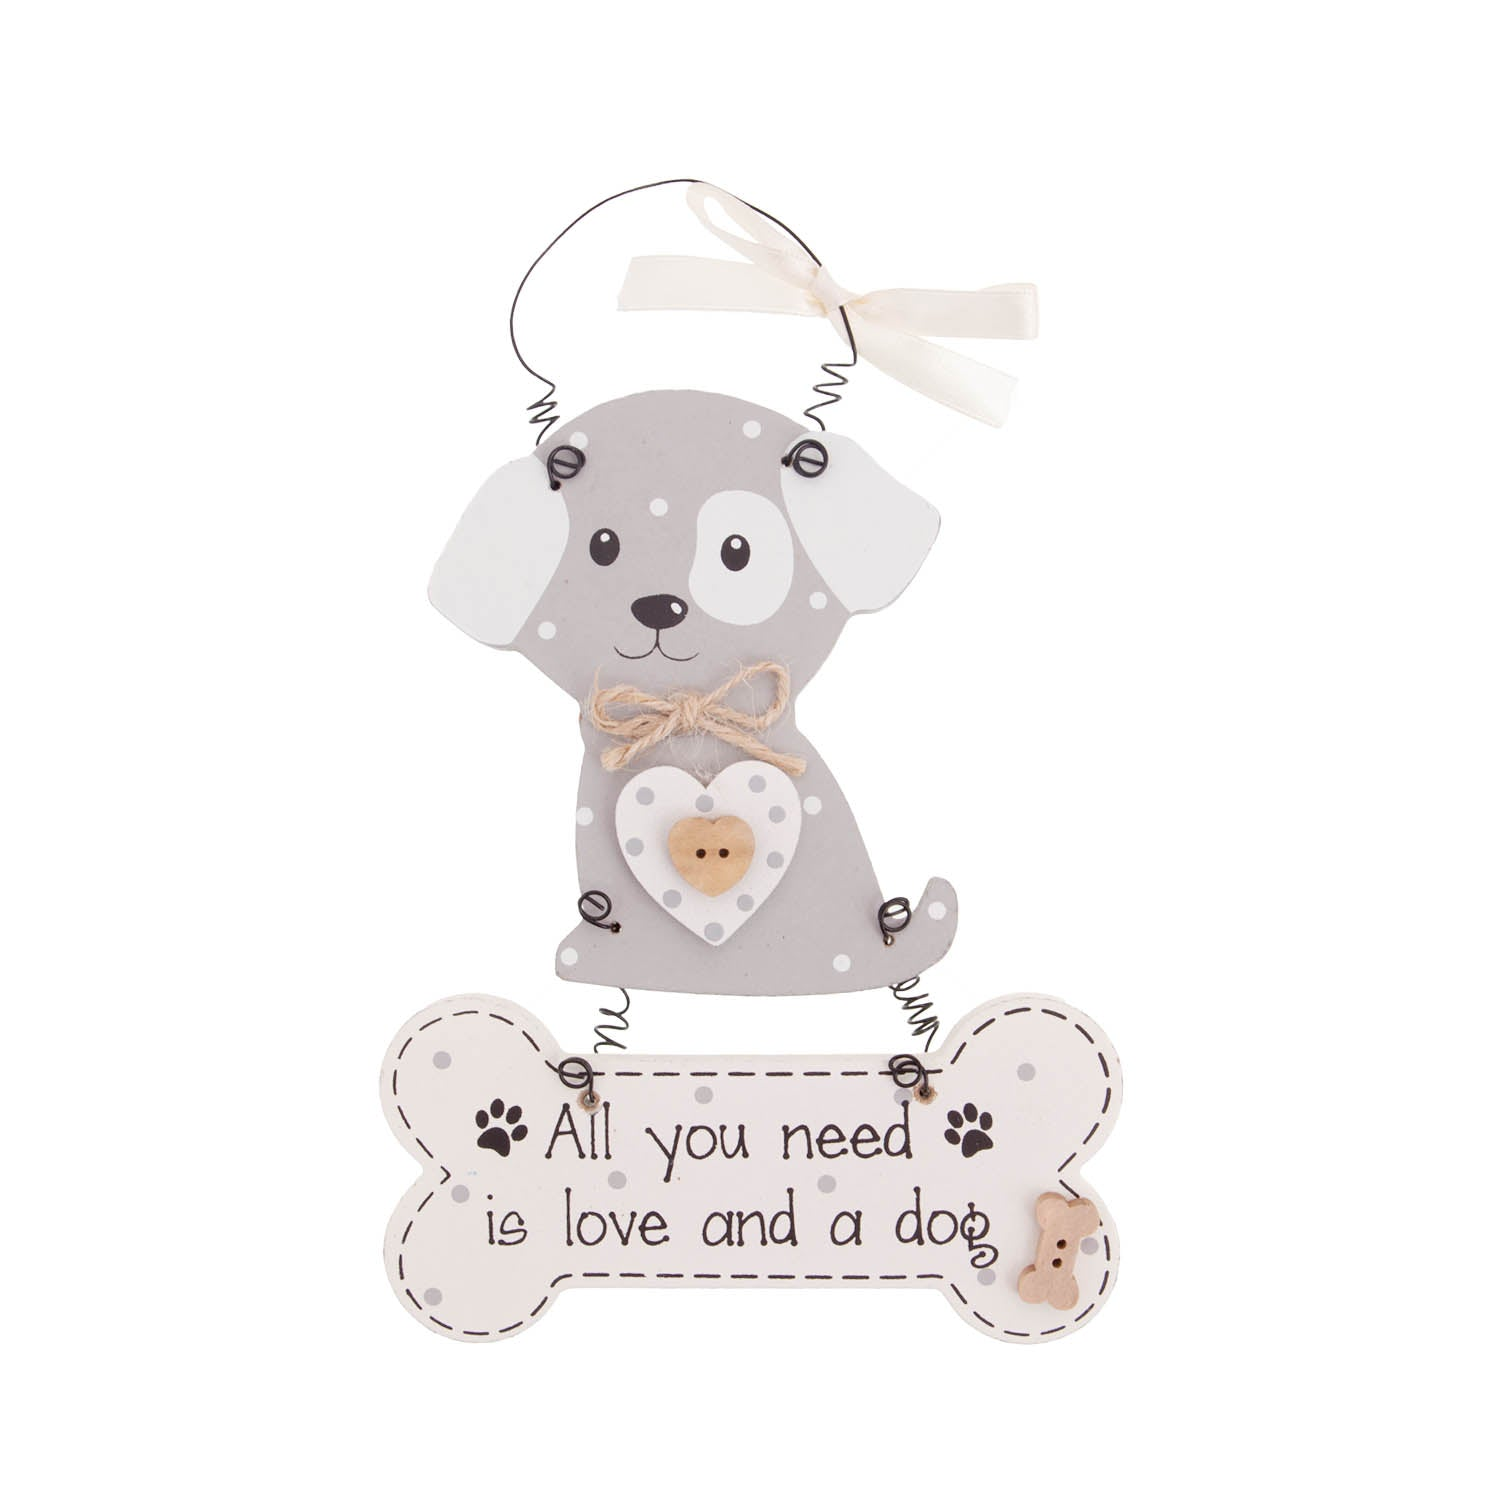 DogKrazyGifts - Faithful Pooch Dangly Dog and Bone - All you need is love and a dog - part of the range of Dog Themed Signs available from Dog Krazy Gifts